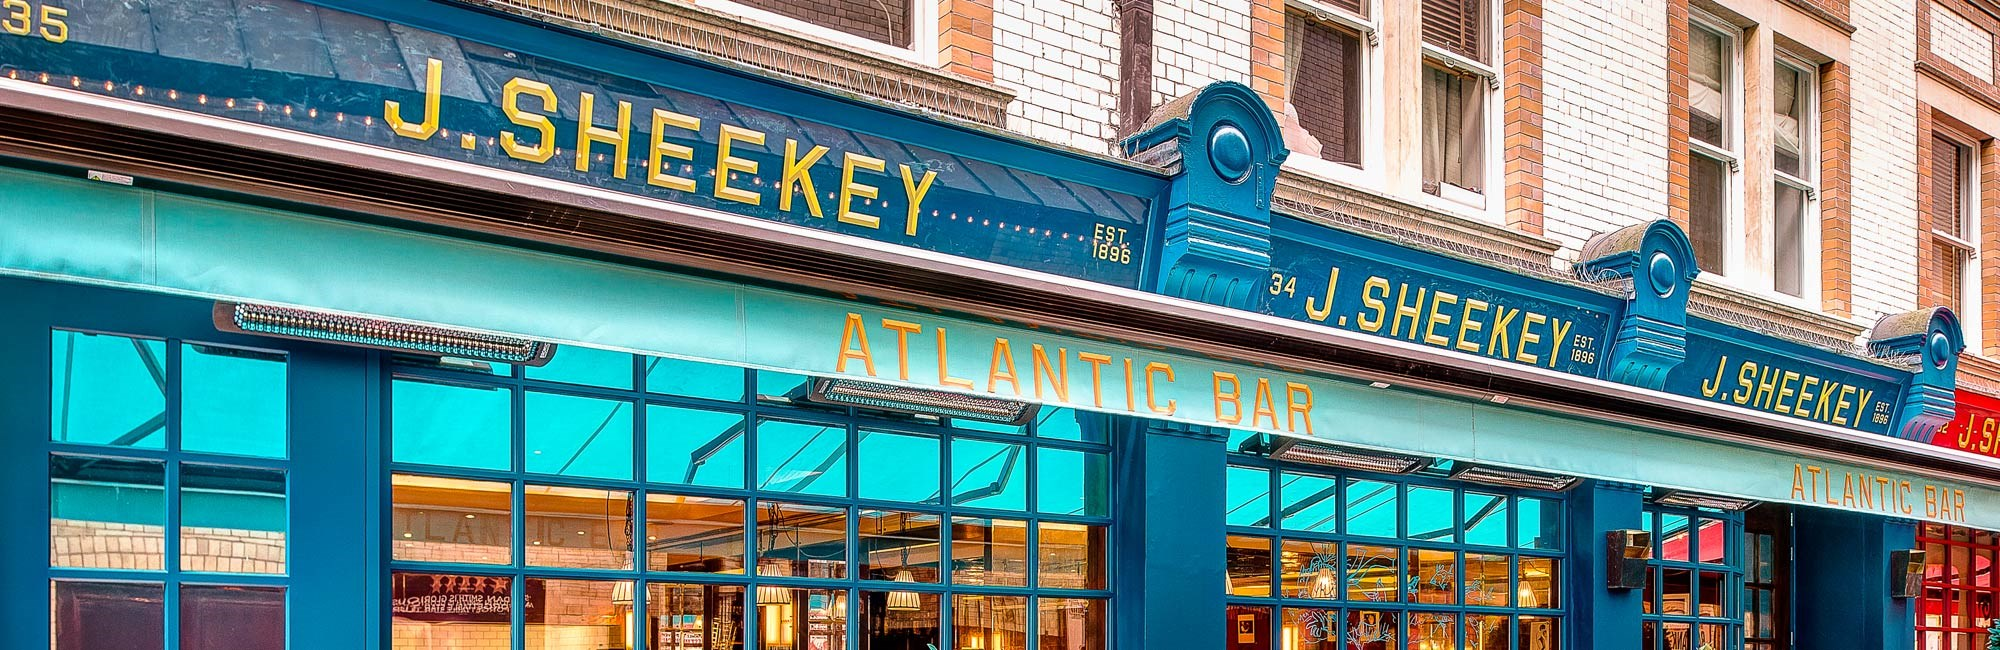 j sheekey exterior shot by paul winch furness